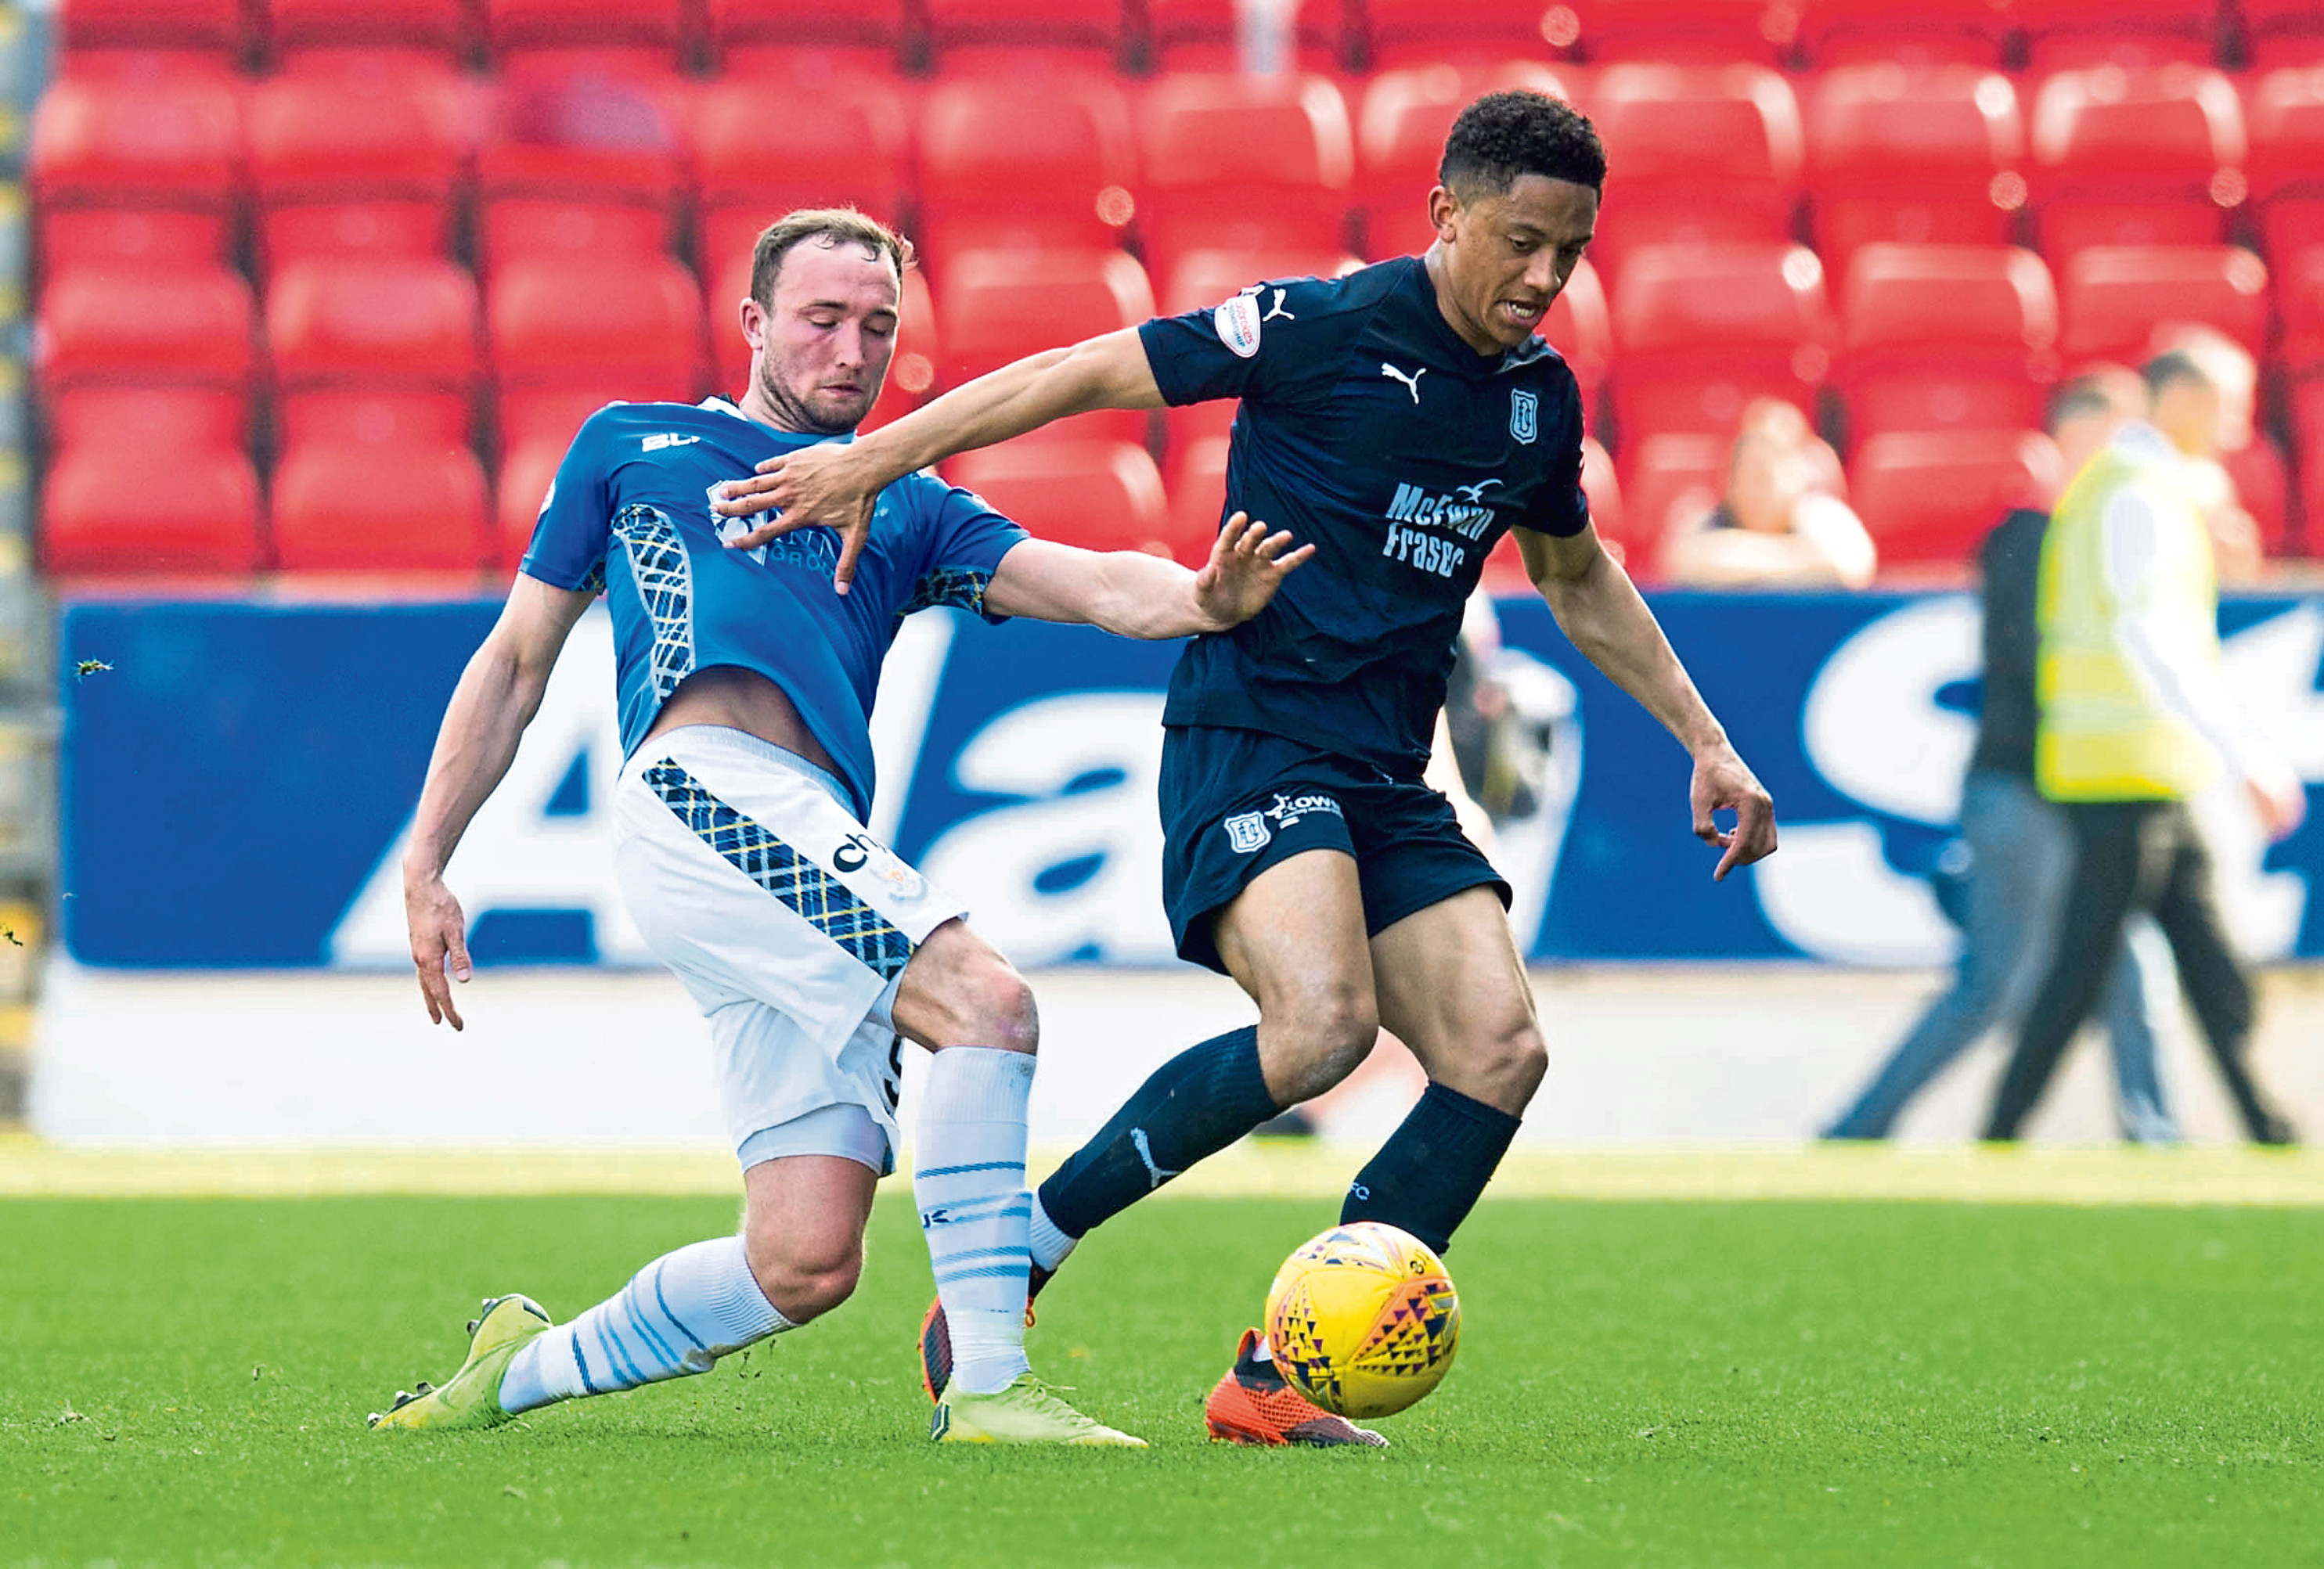 Dundee were meek in defeat to St Johnstone on Saturday.